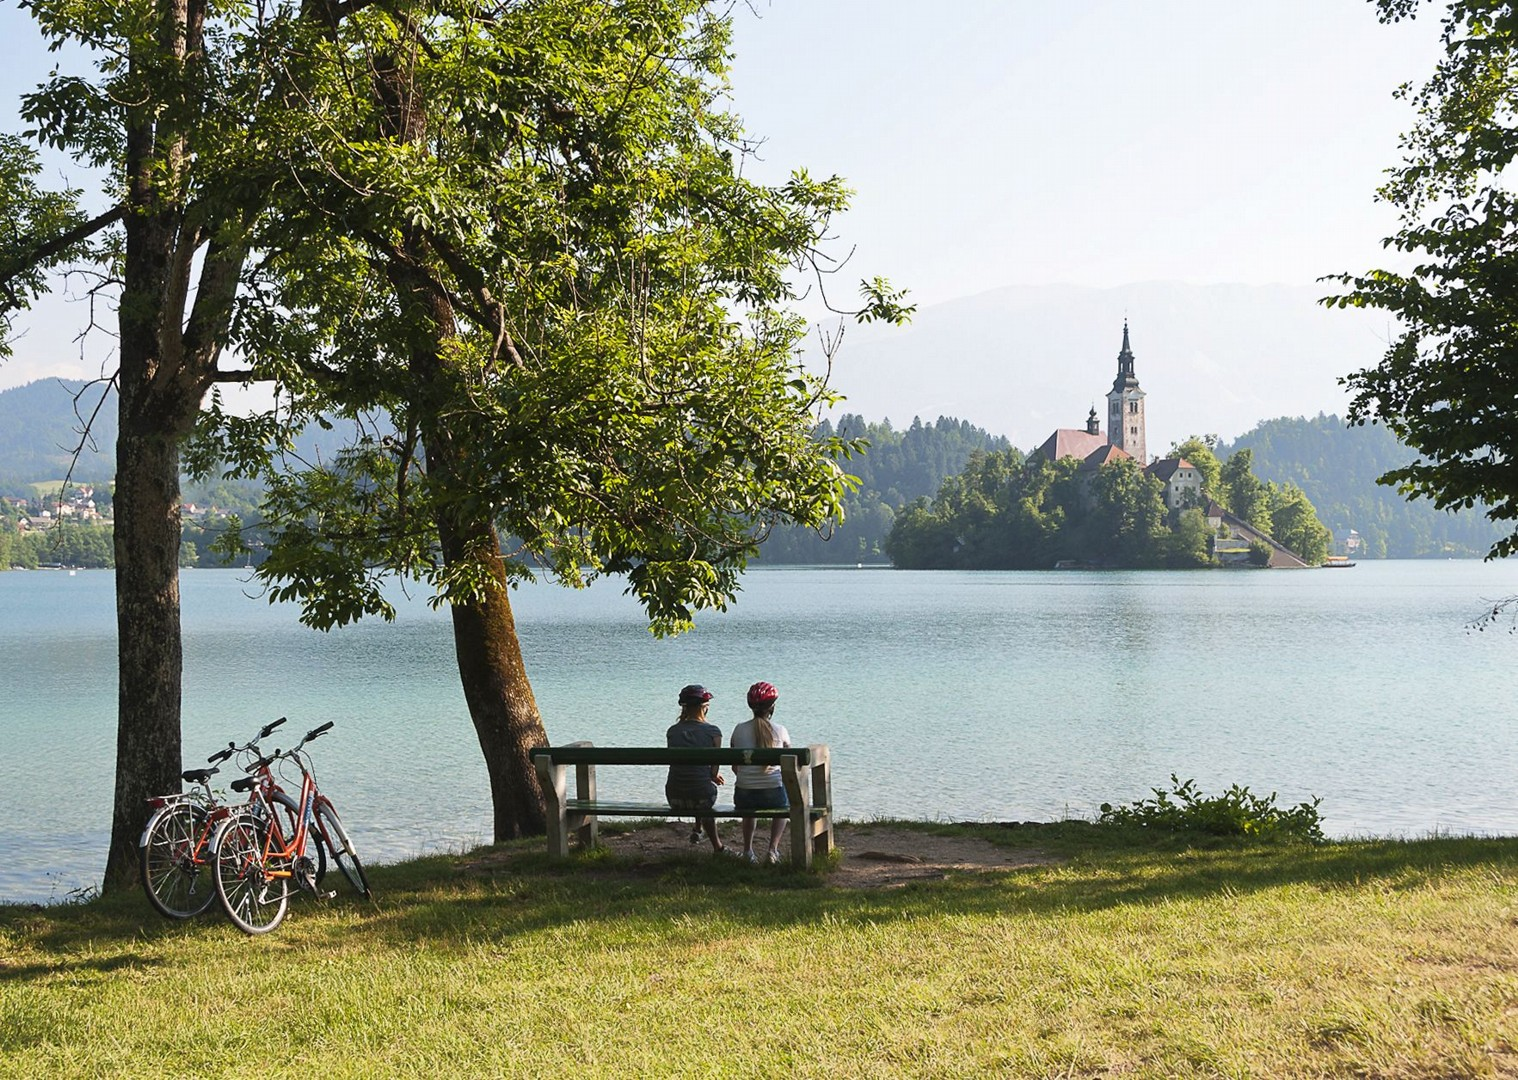 self-guided-leisure-cycling-holiday-slovenia-highlights-of-lake-bled.jpg - Slovenia - Highlights of Lake Bled - Self-Guided Leisure Cycling Holiday - Leisure Cycling